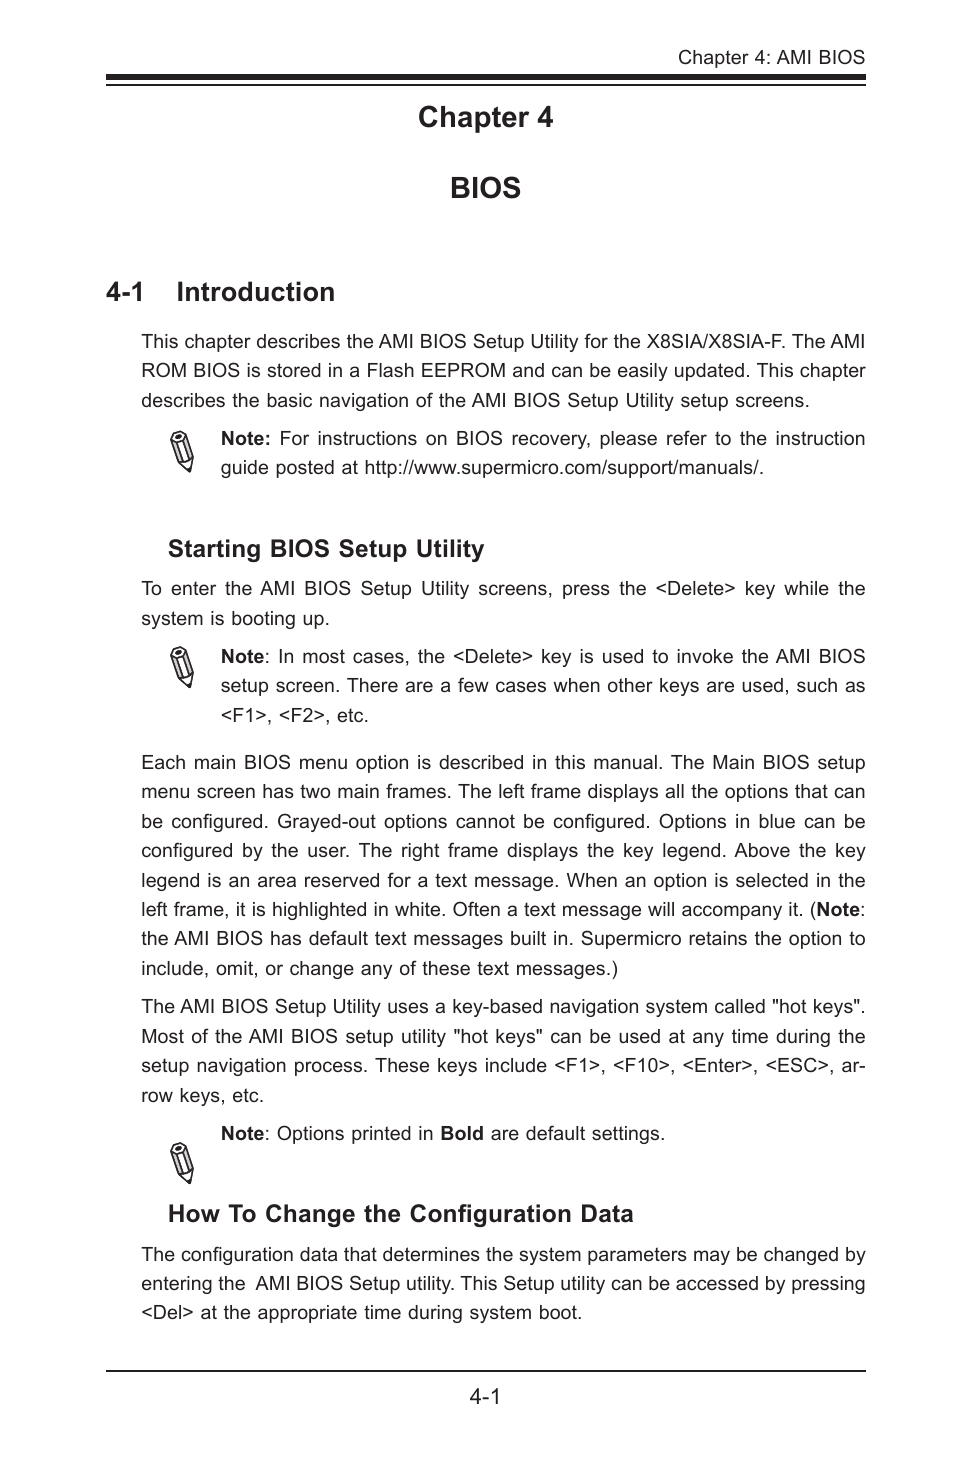 Chapter 4 bios, 1 introduction   SUPER MICRO Computer SUPERO